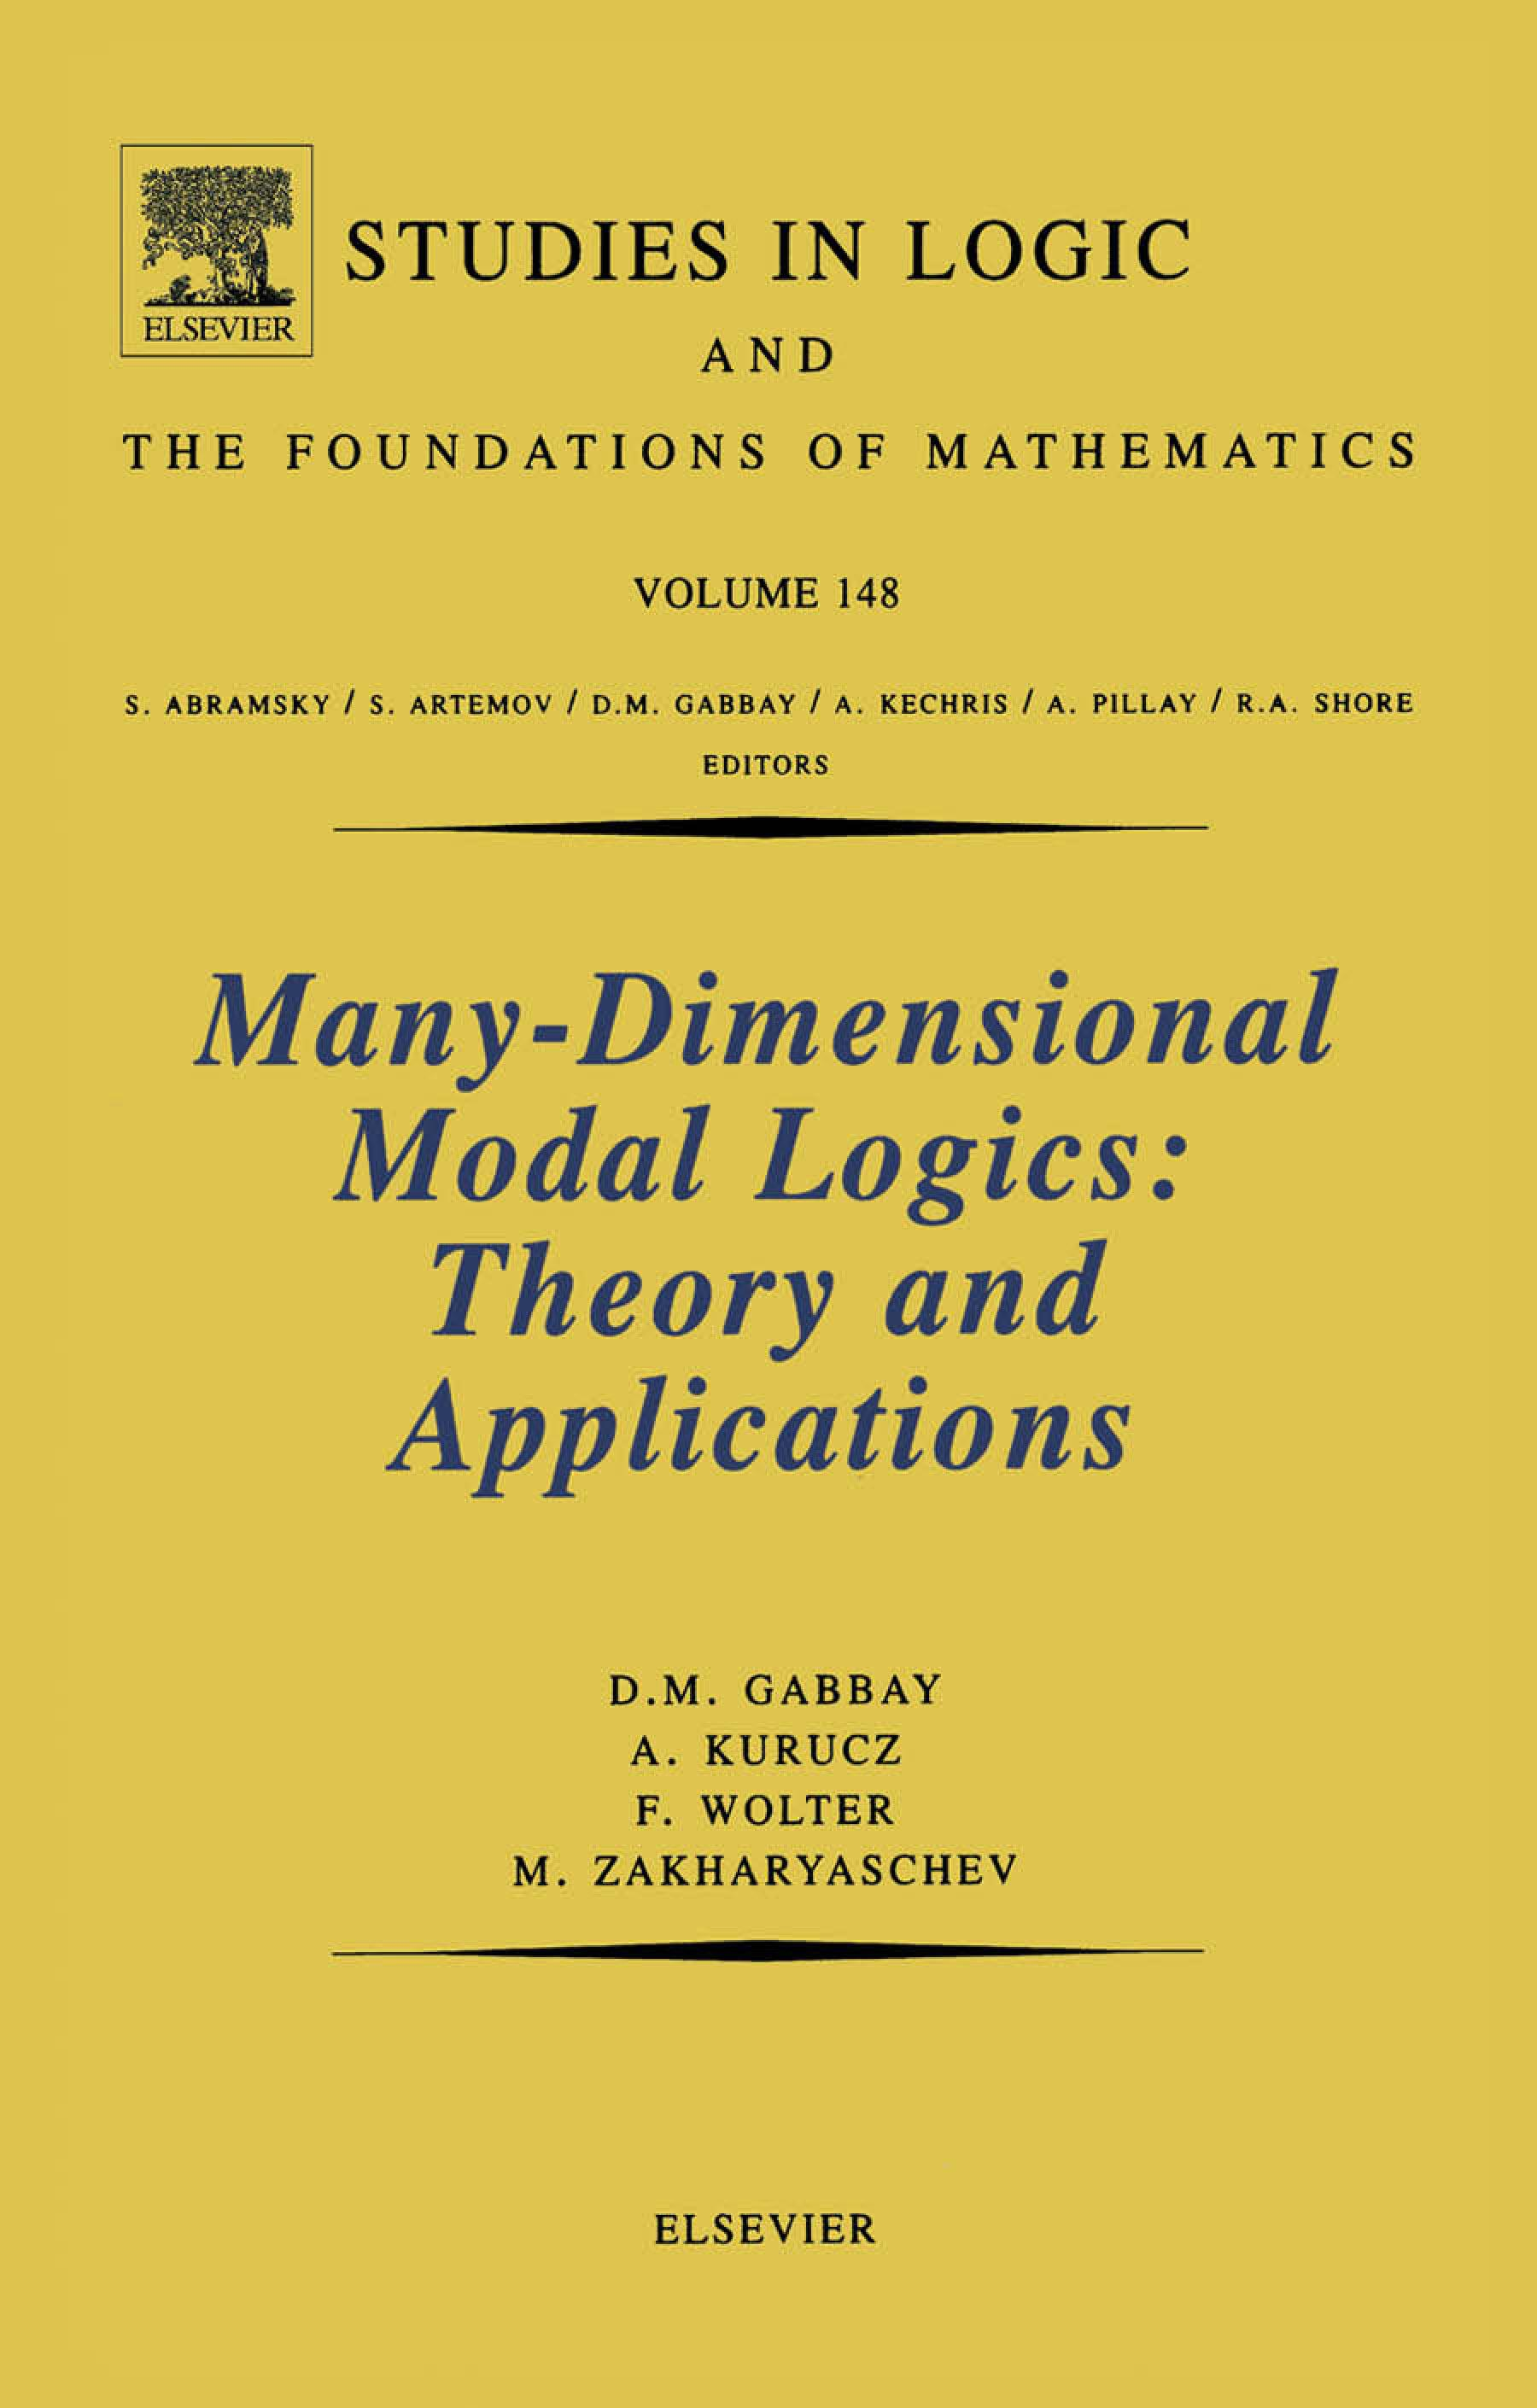 Many-Dimensional Modal Logics: Theory and Applications: Theory and Applications EB9780080535784